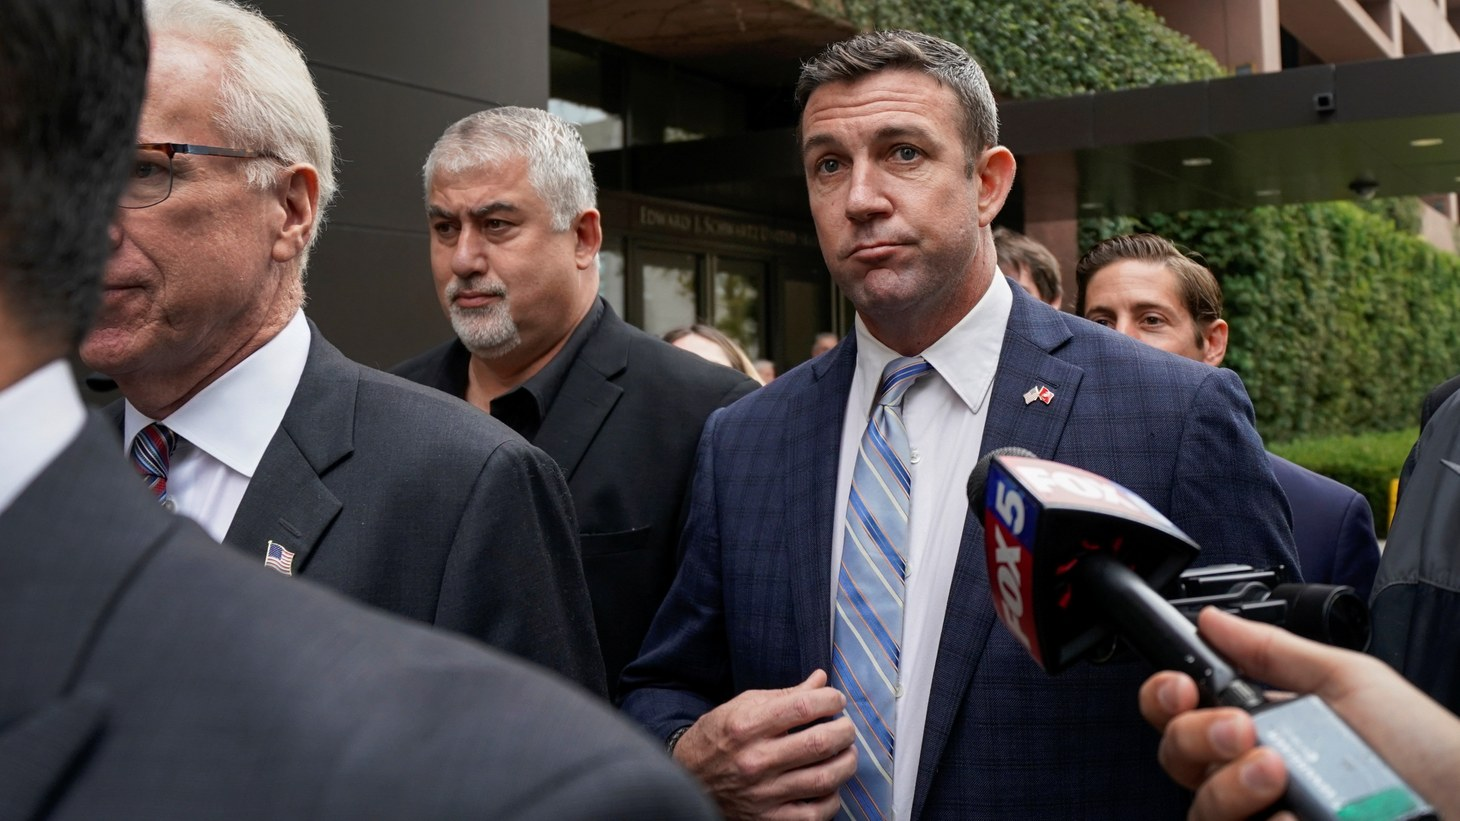 U.S. Representative Duncan Hunter leaves federal court after pleading guilty to misusing campaign funds in San Diego, California, U.S., December 3, 2019.